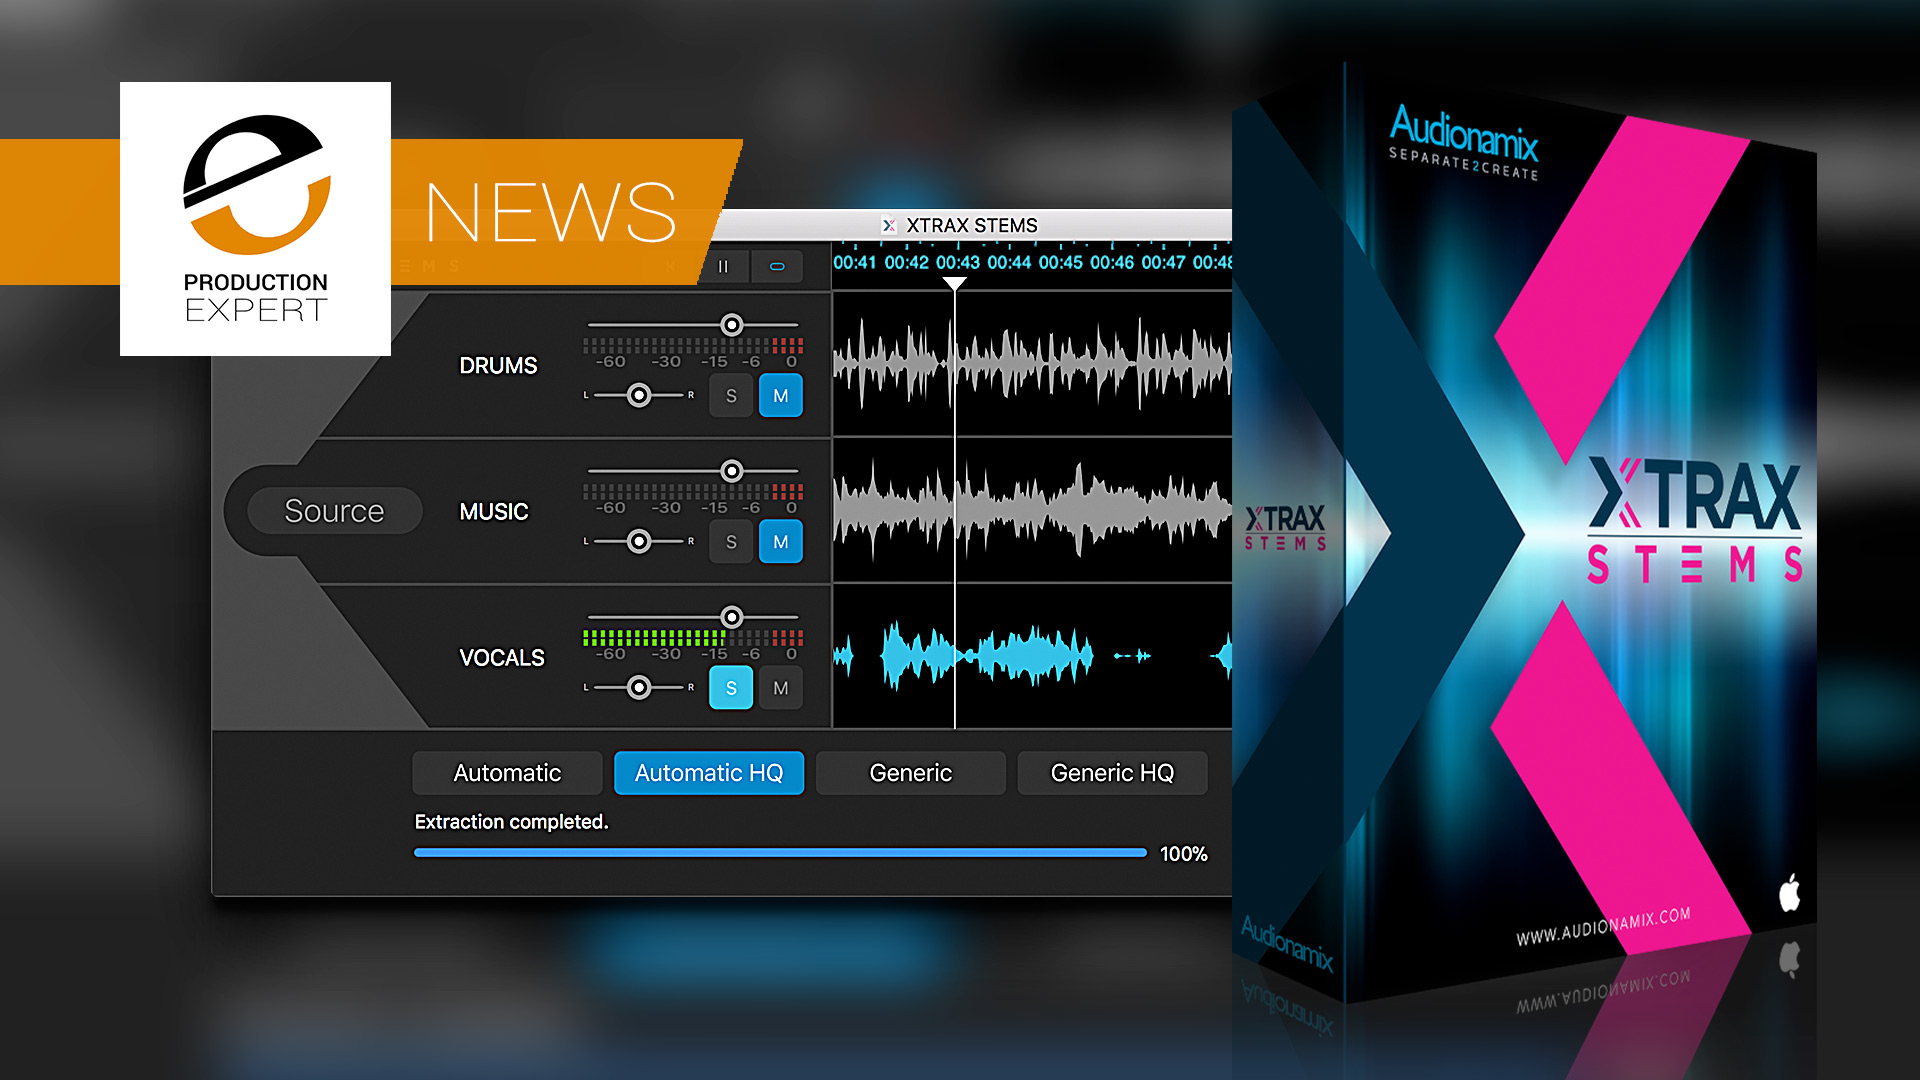 Audionamix XTRAX STEMS - Separate Mixed Music Into Vocals